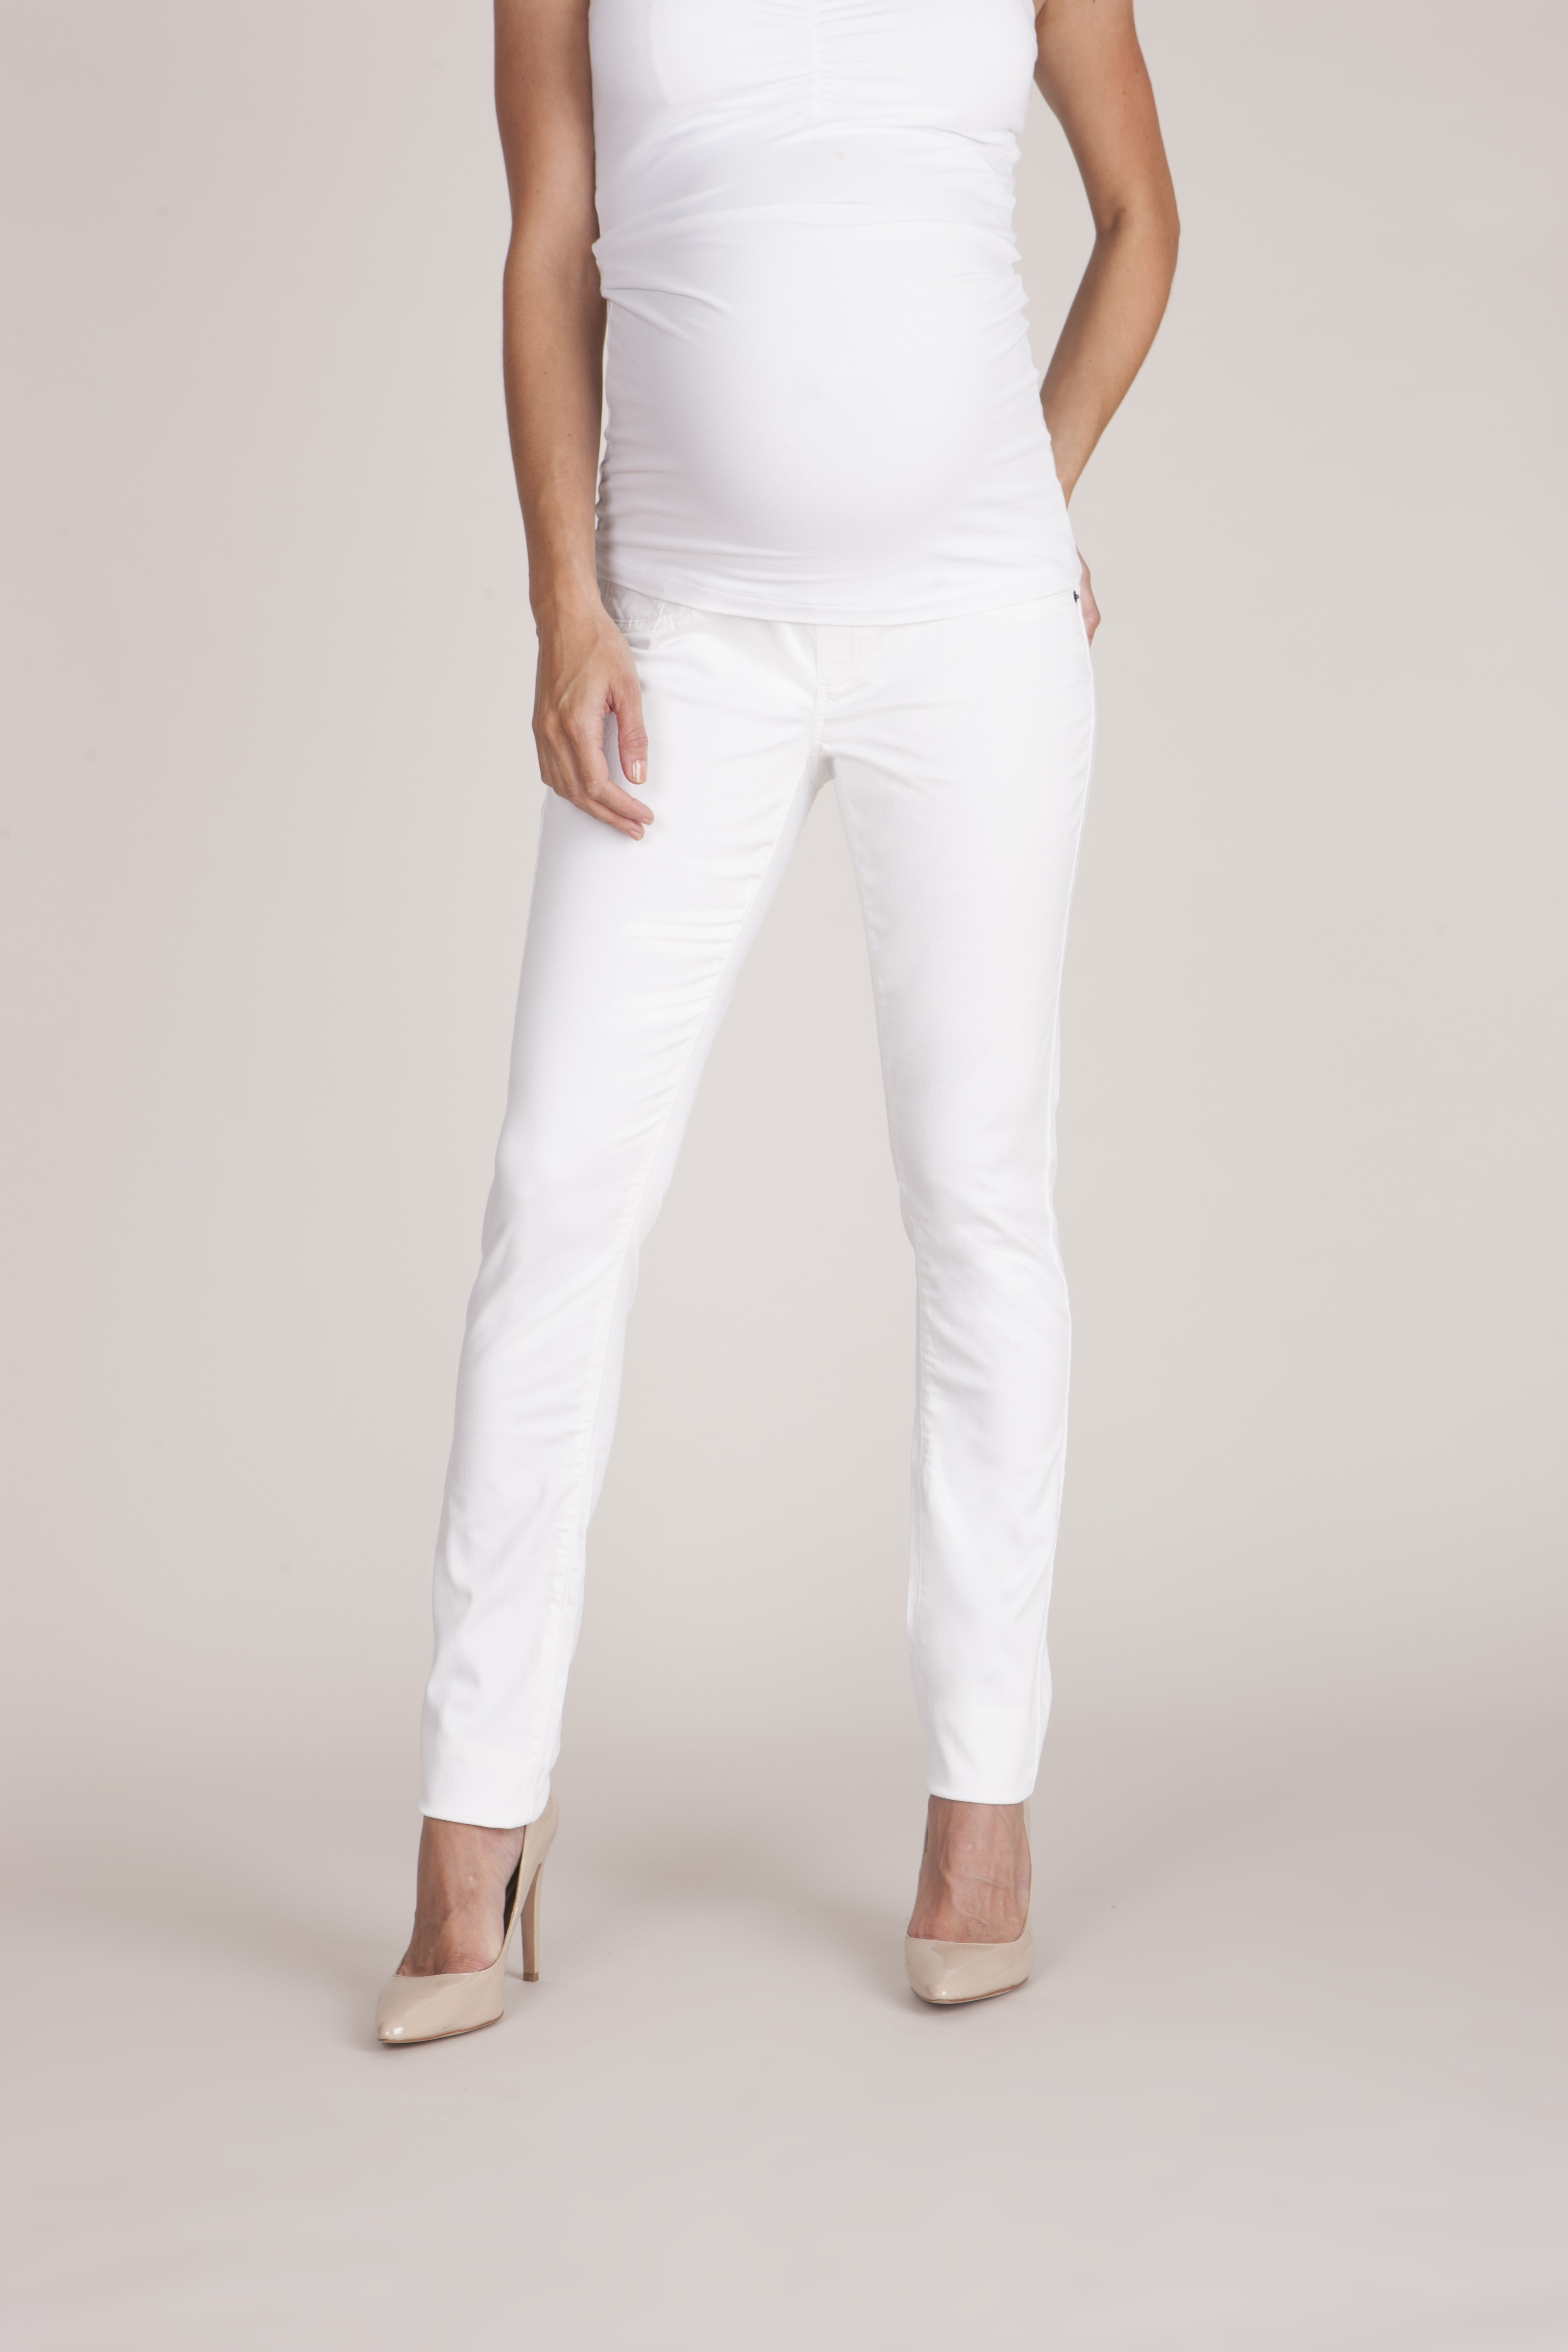 FB_Jeans VICKY White